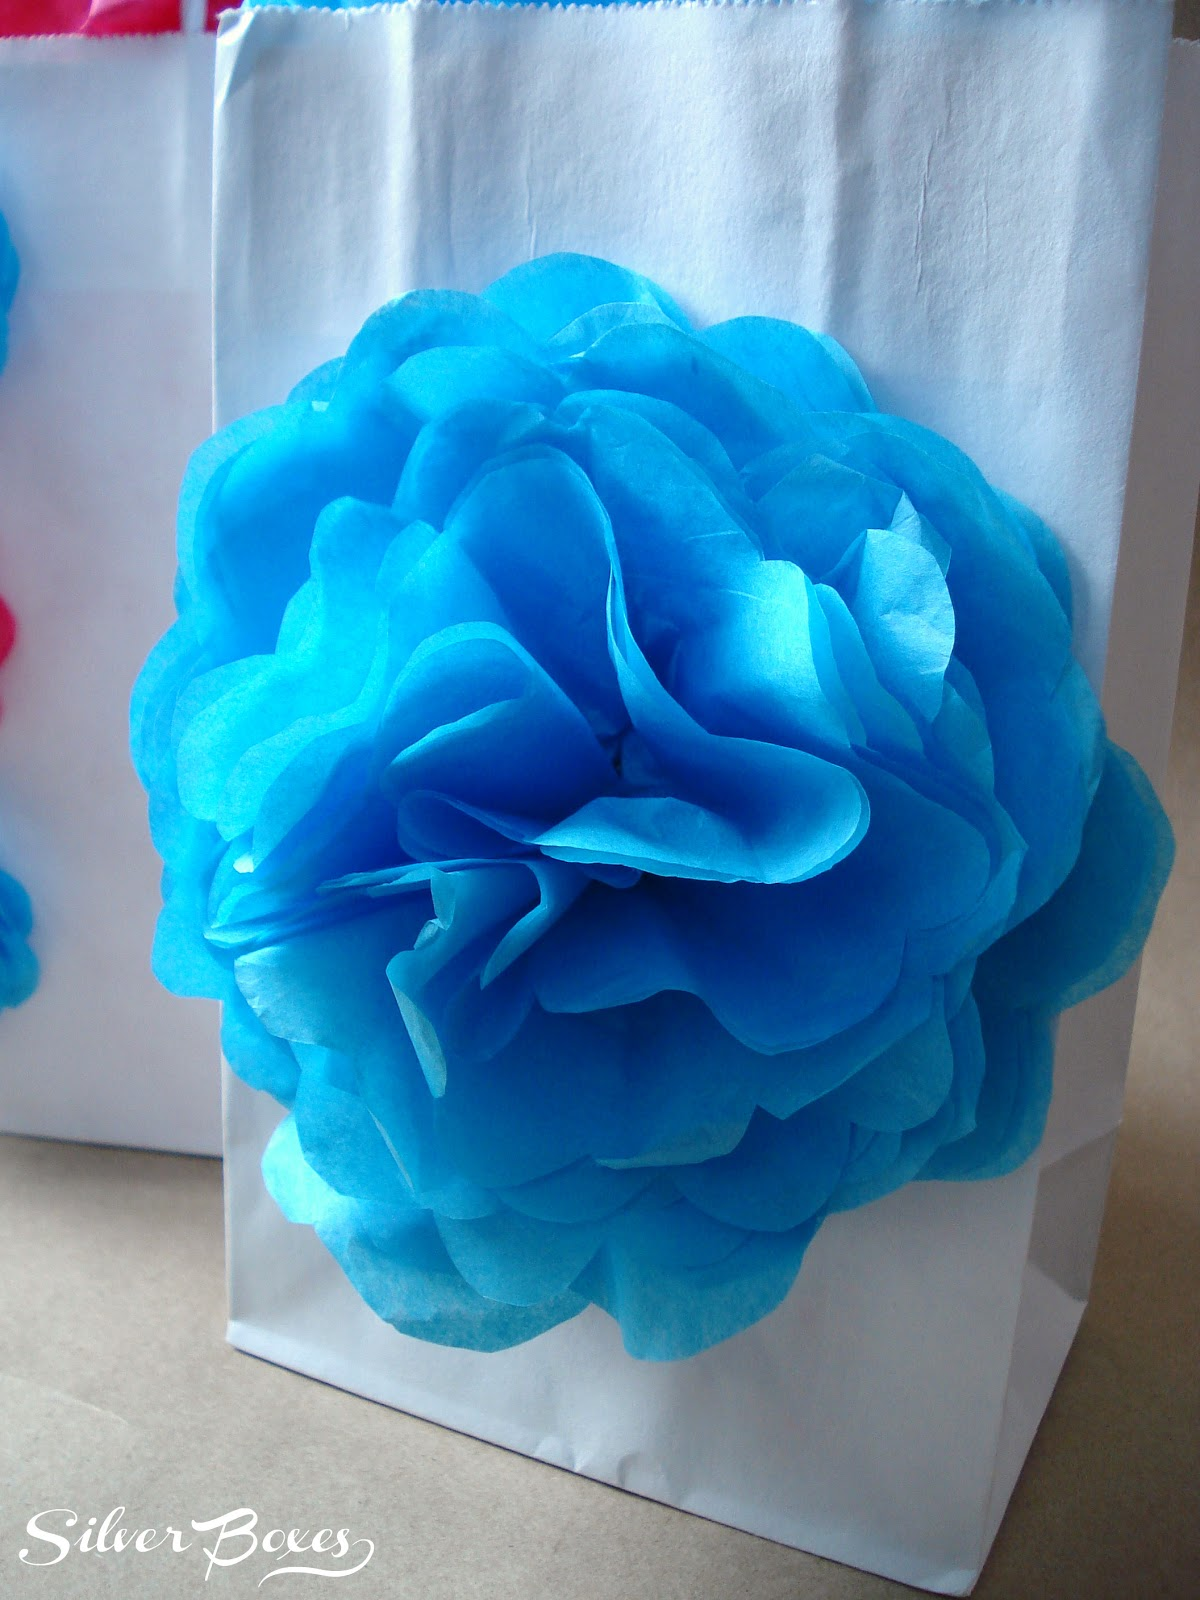 How to make tissue paper flowers large images fresh lotus flowers how to make small tissue paper flowers coursework help mightylinksfo